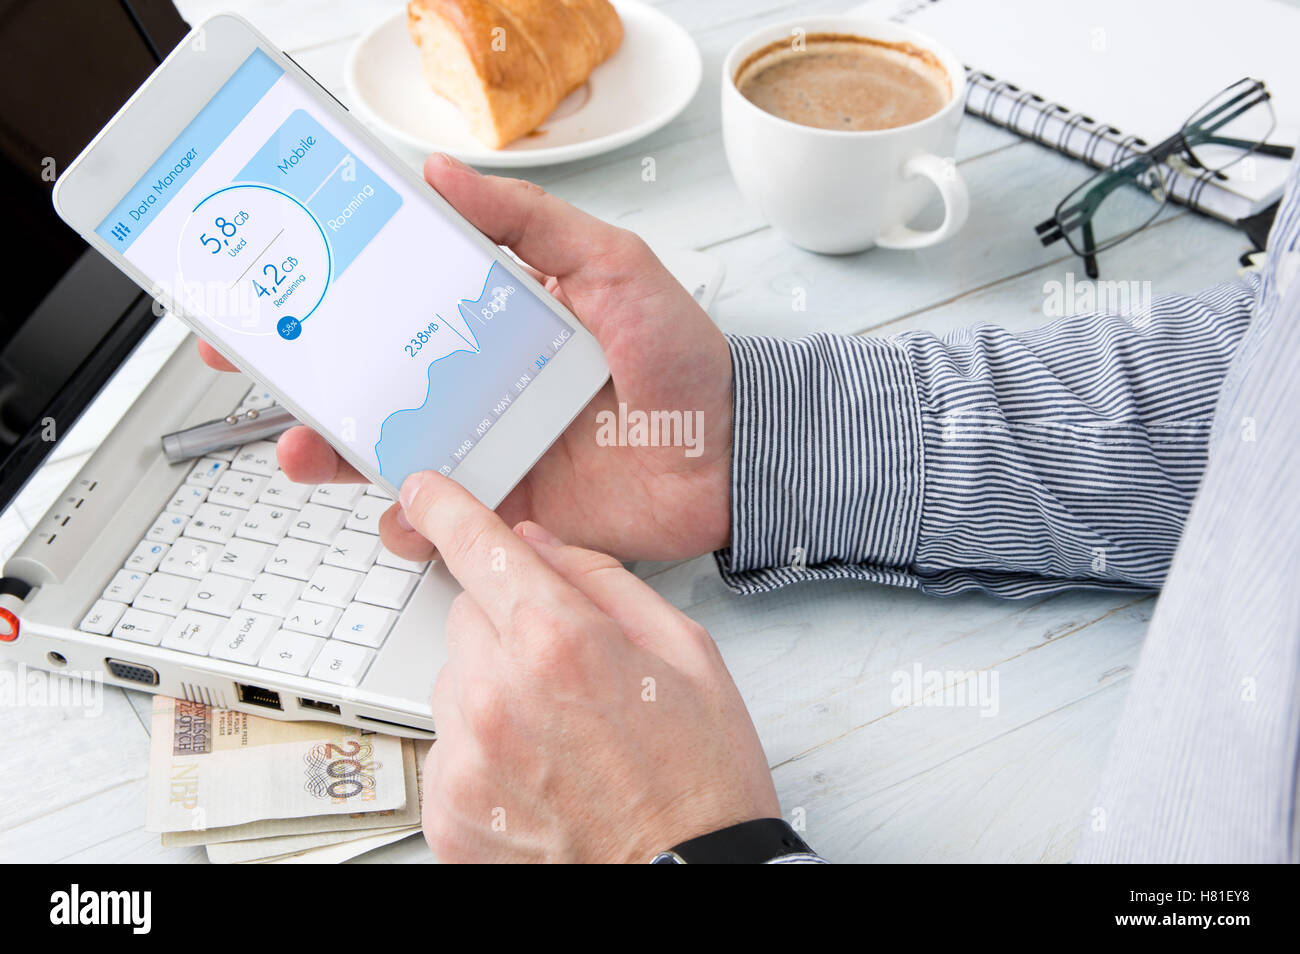 Man is checking data usage on his smartphone - Stock Image